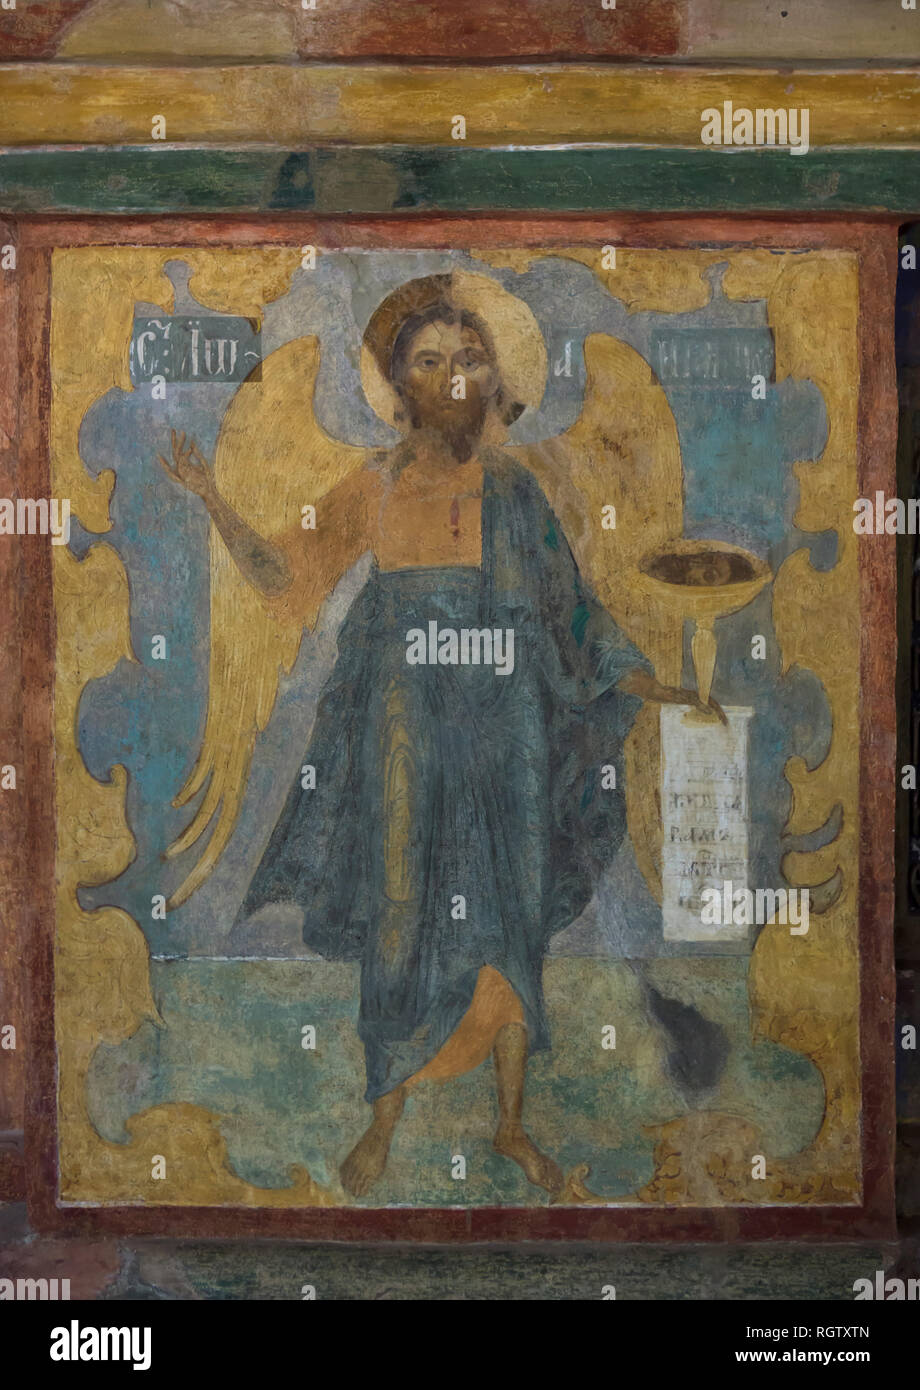 Saint John the Baptist as the Angel of the Desert depicted in the fresco by Russian icon painter Lyubim Ageyev and his workshop (1640-1641) in the west gallery (papert) of the Church of Saint Nicholas Nadein (Nikolai Nadein) in Yaroslavl, Russia. Stock Photo